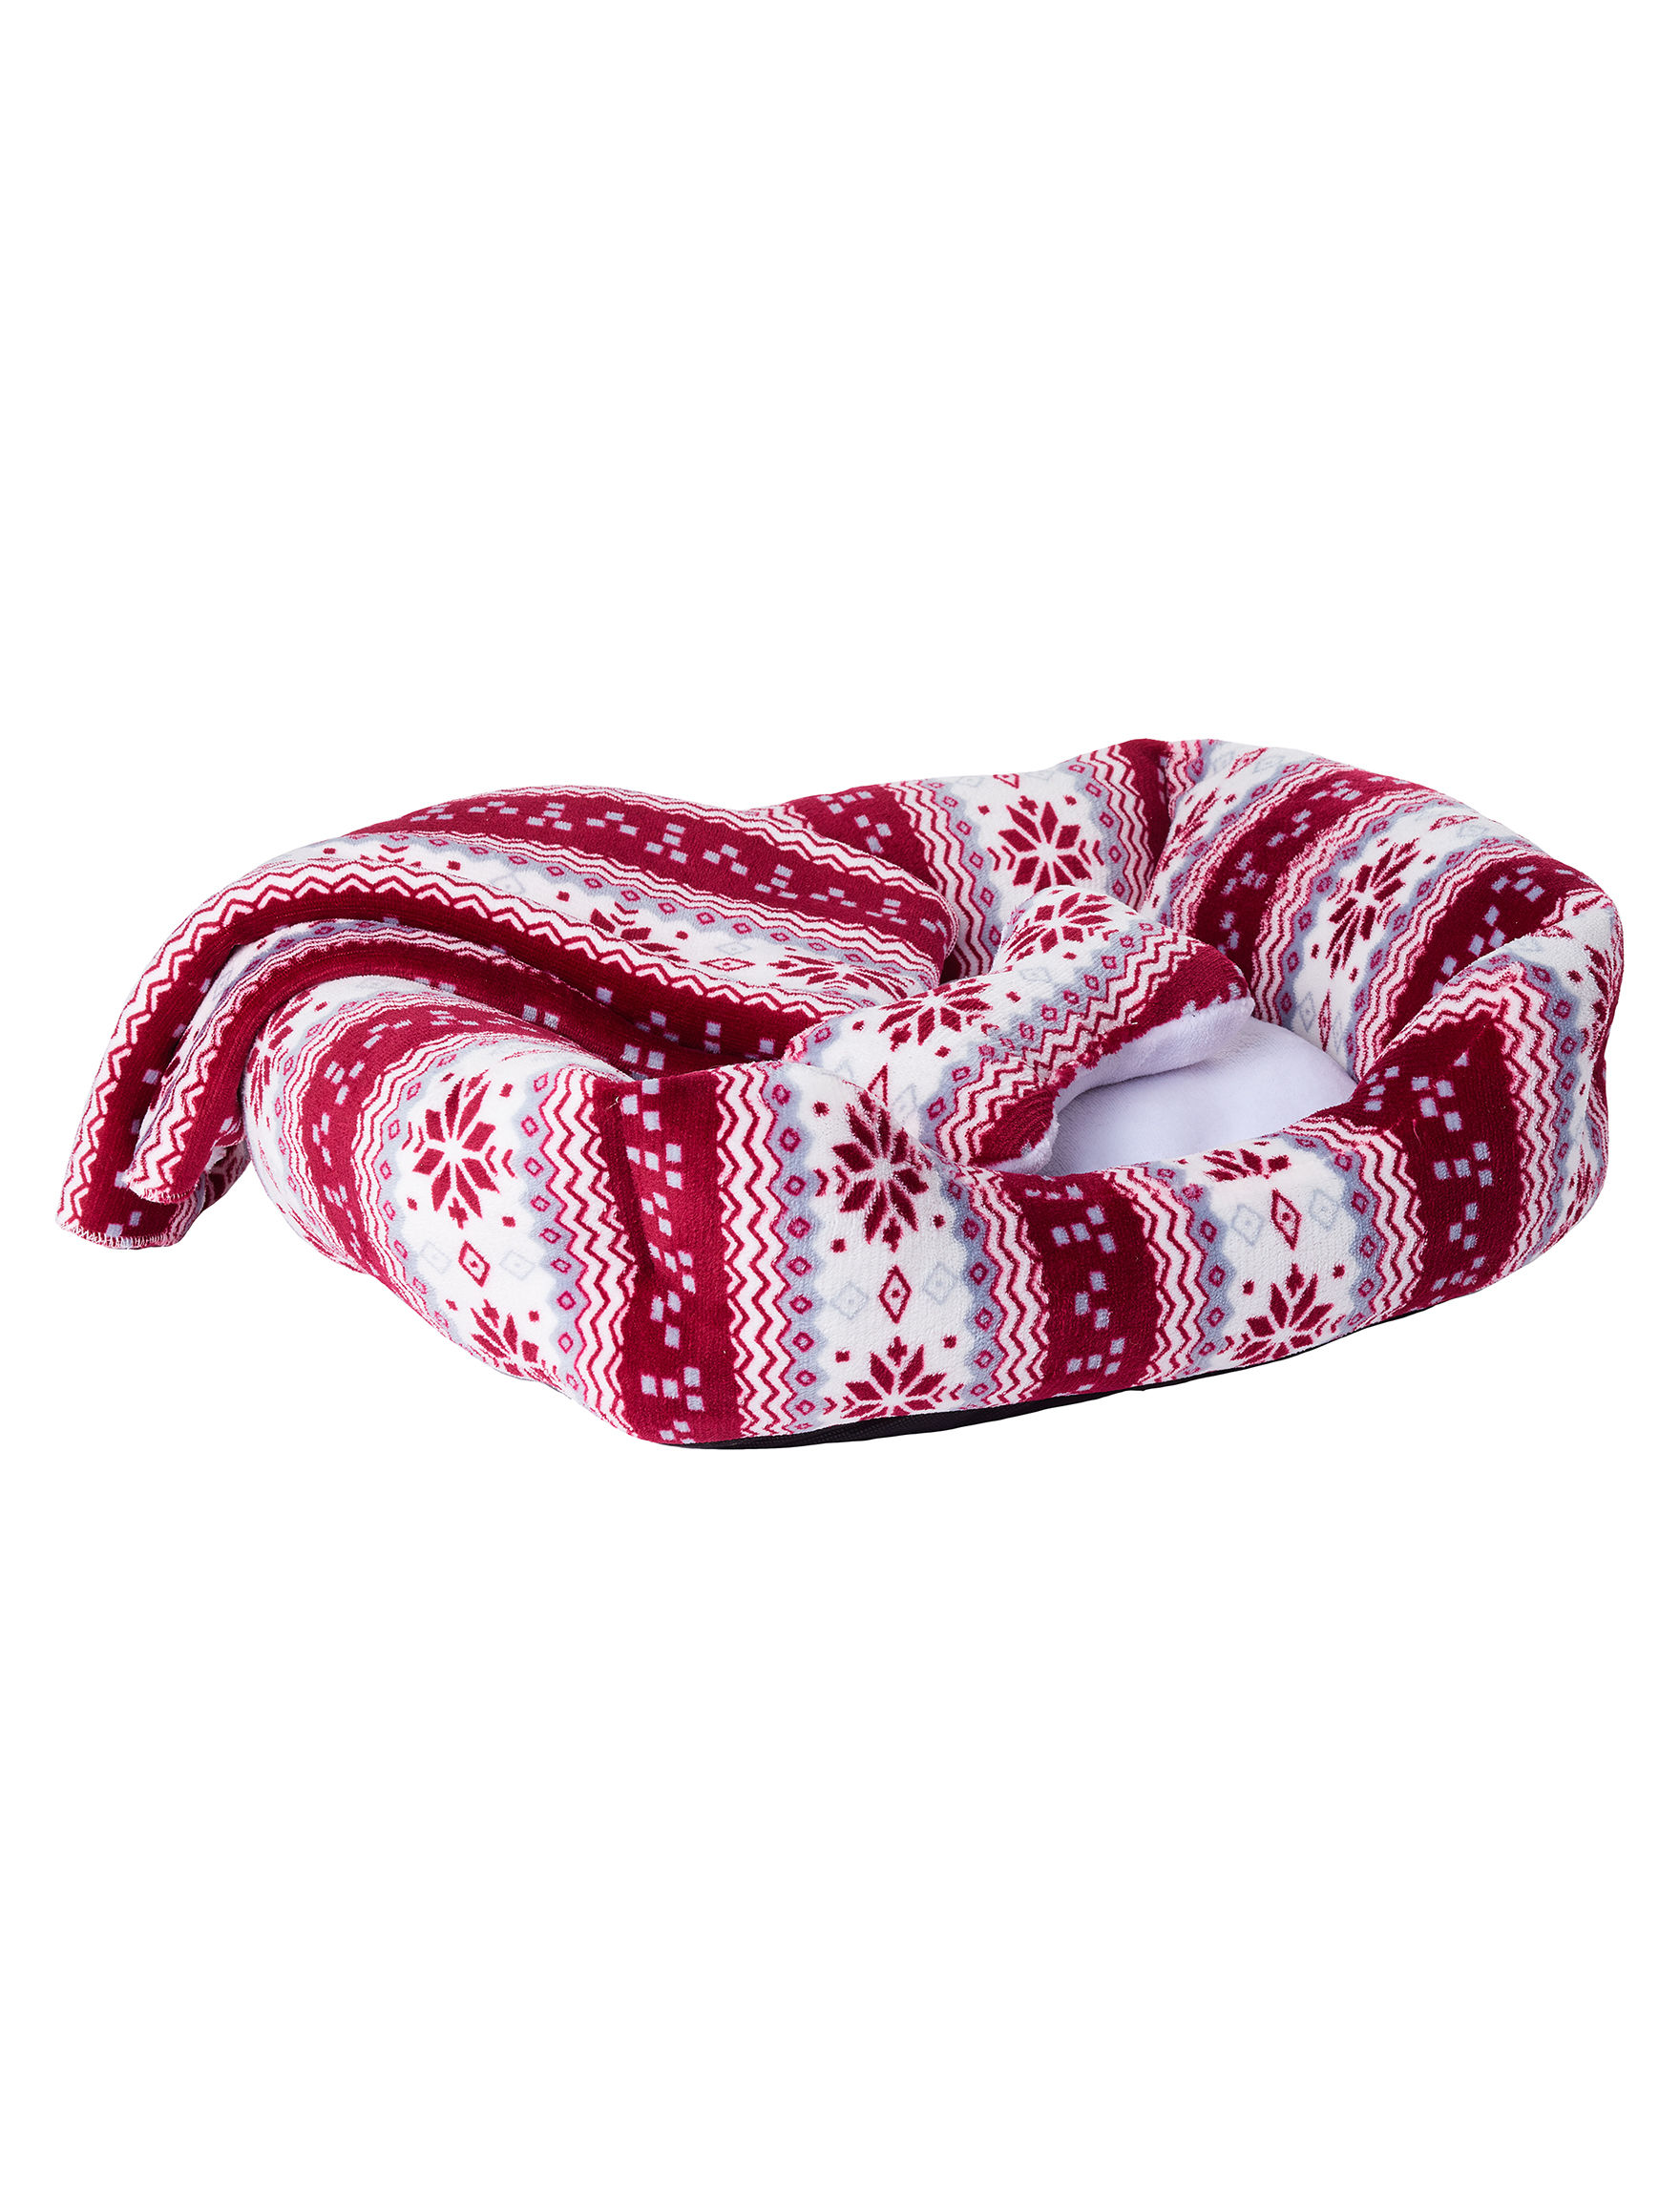 Pure Comfort Burgundy / White Pet Beds & Houses